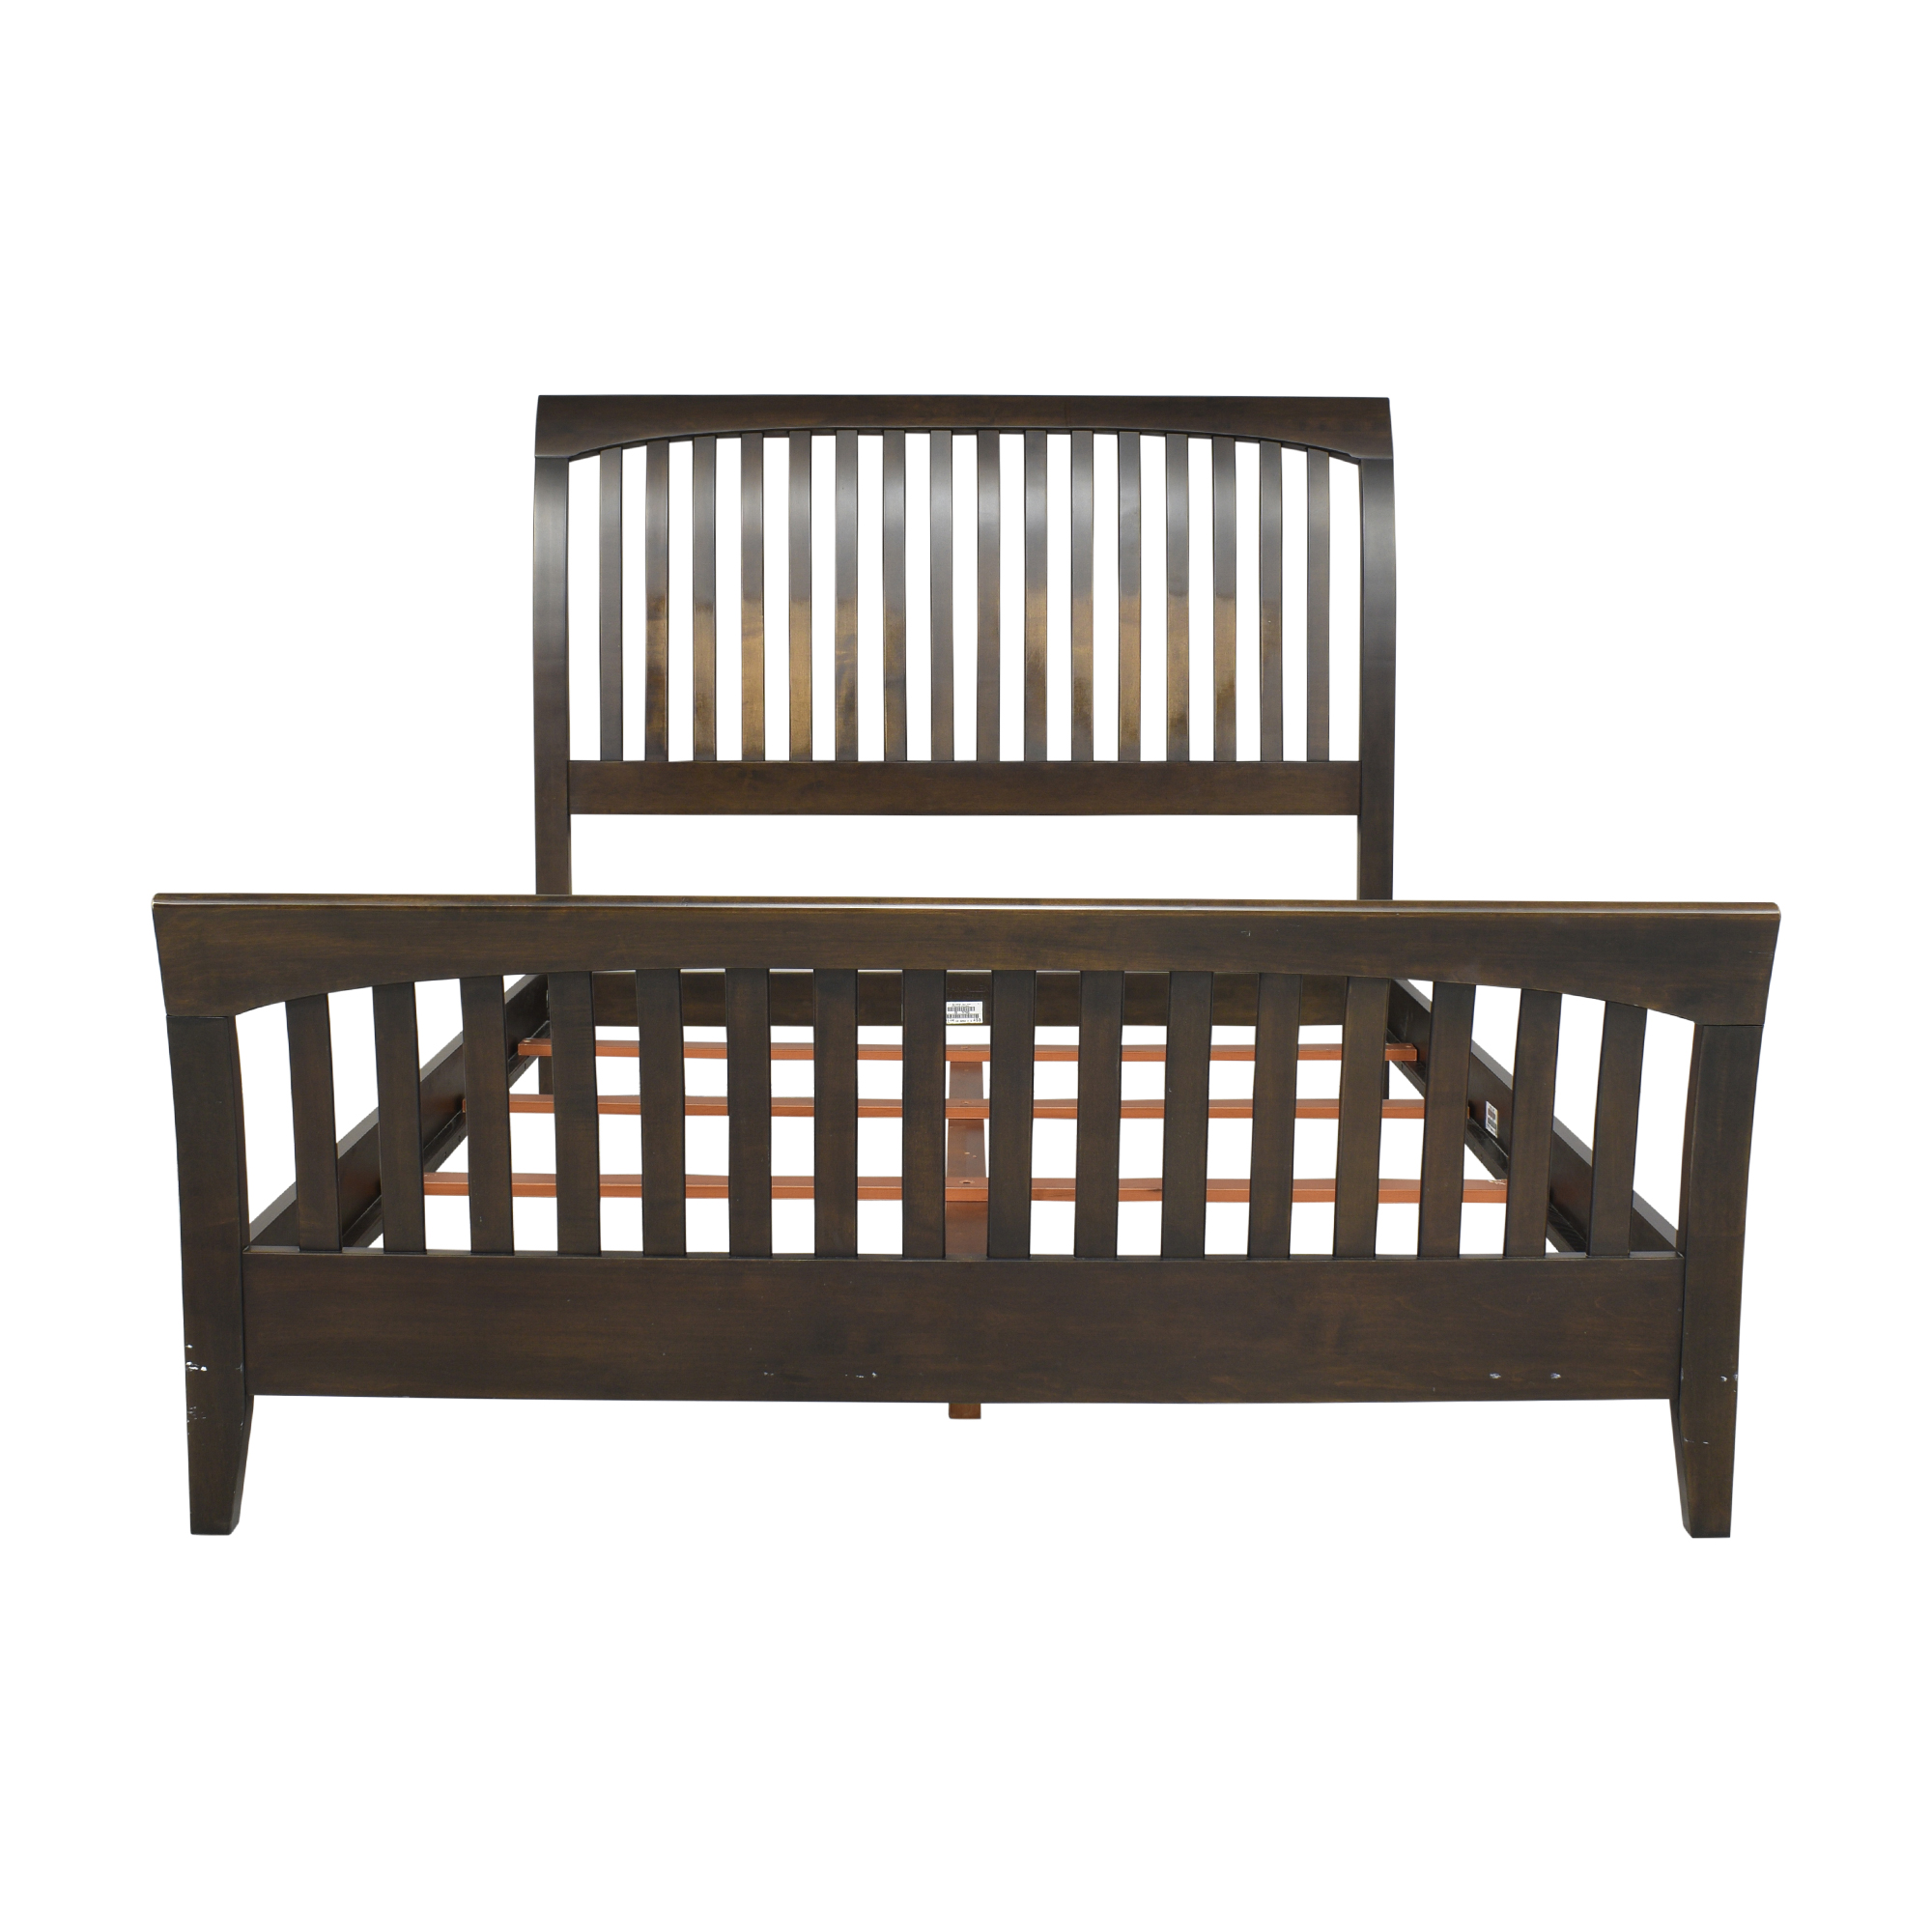 Ethan Allen American Artisan Mission Queen Bed sale